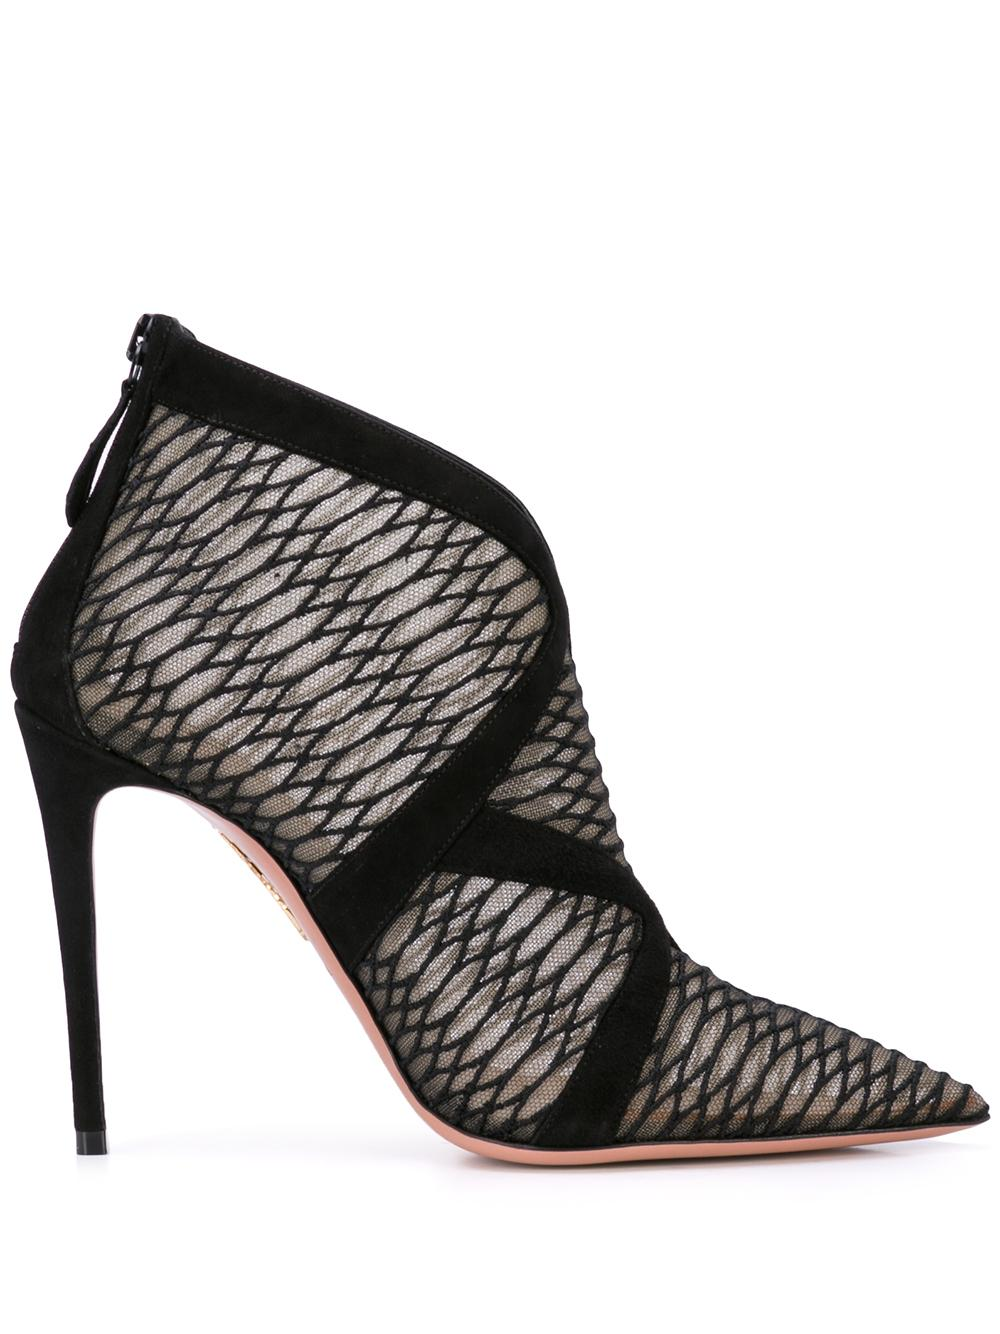 So Vera Snake Tulle/Suede 105mm Bootie Item # SOVIGB0-STU-000